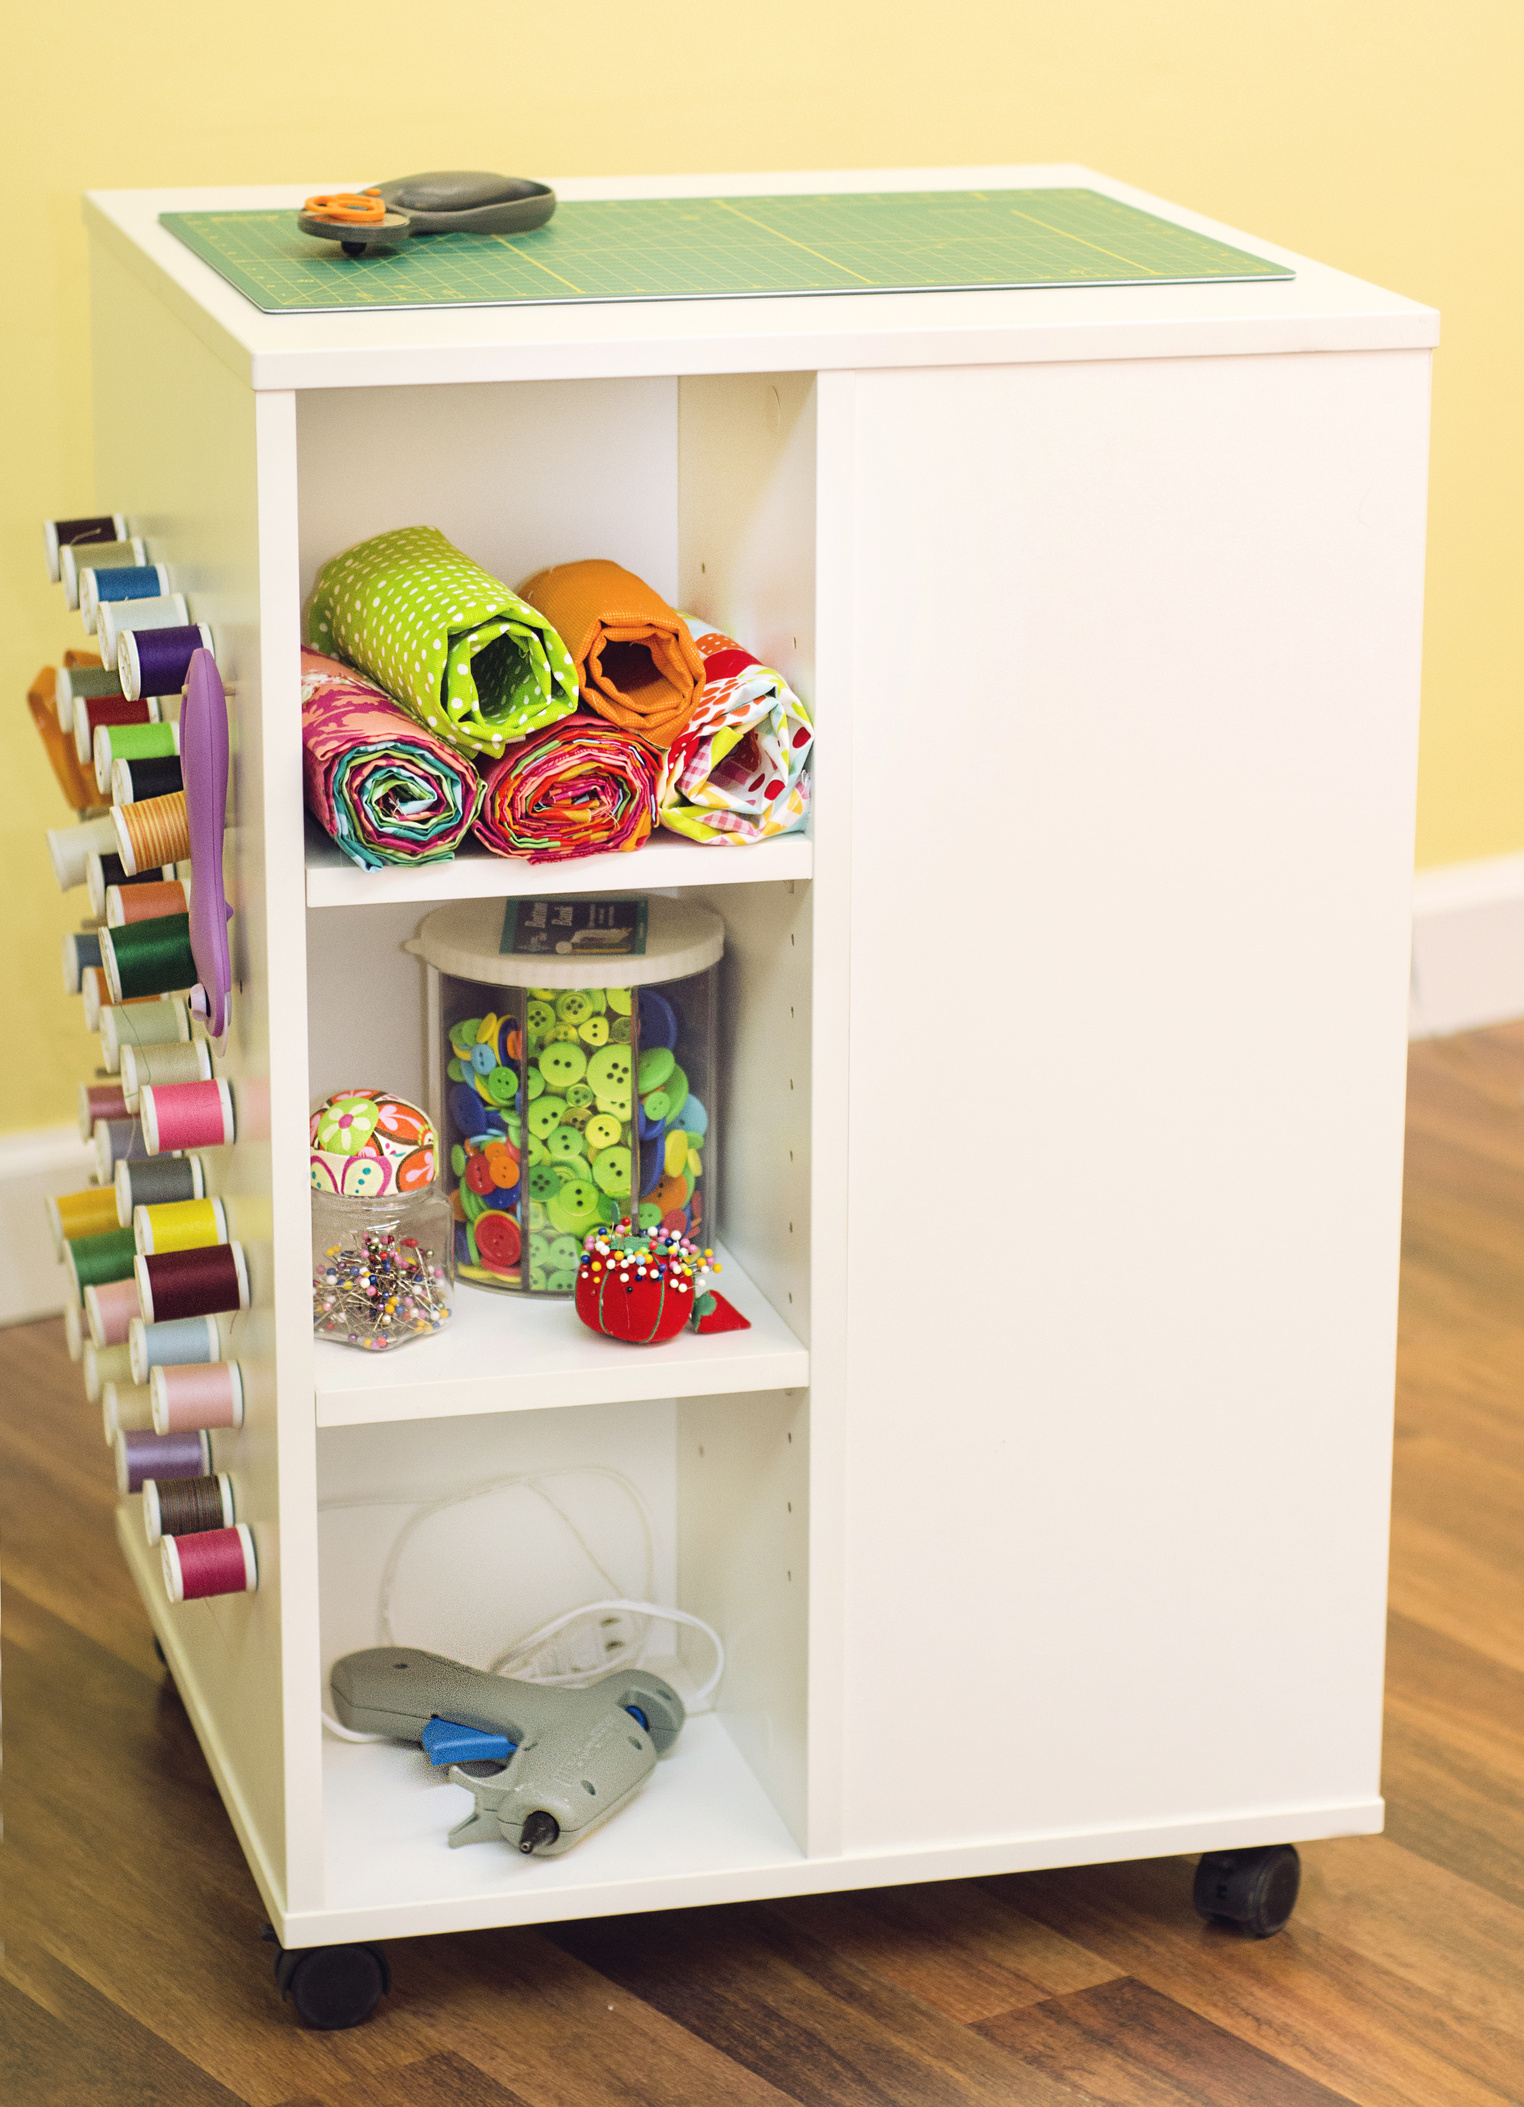 Sewing & Crafting Storage Cube Table